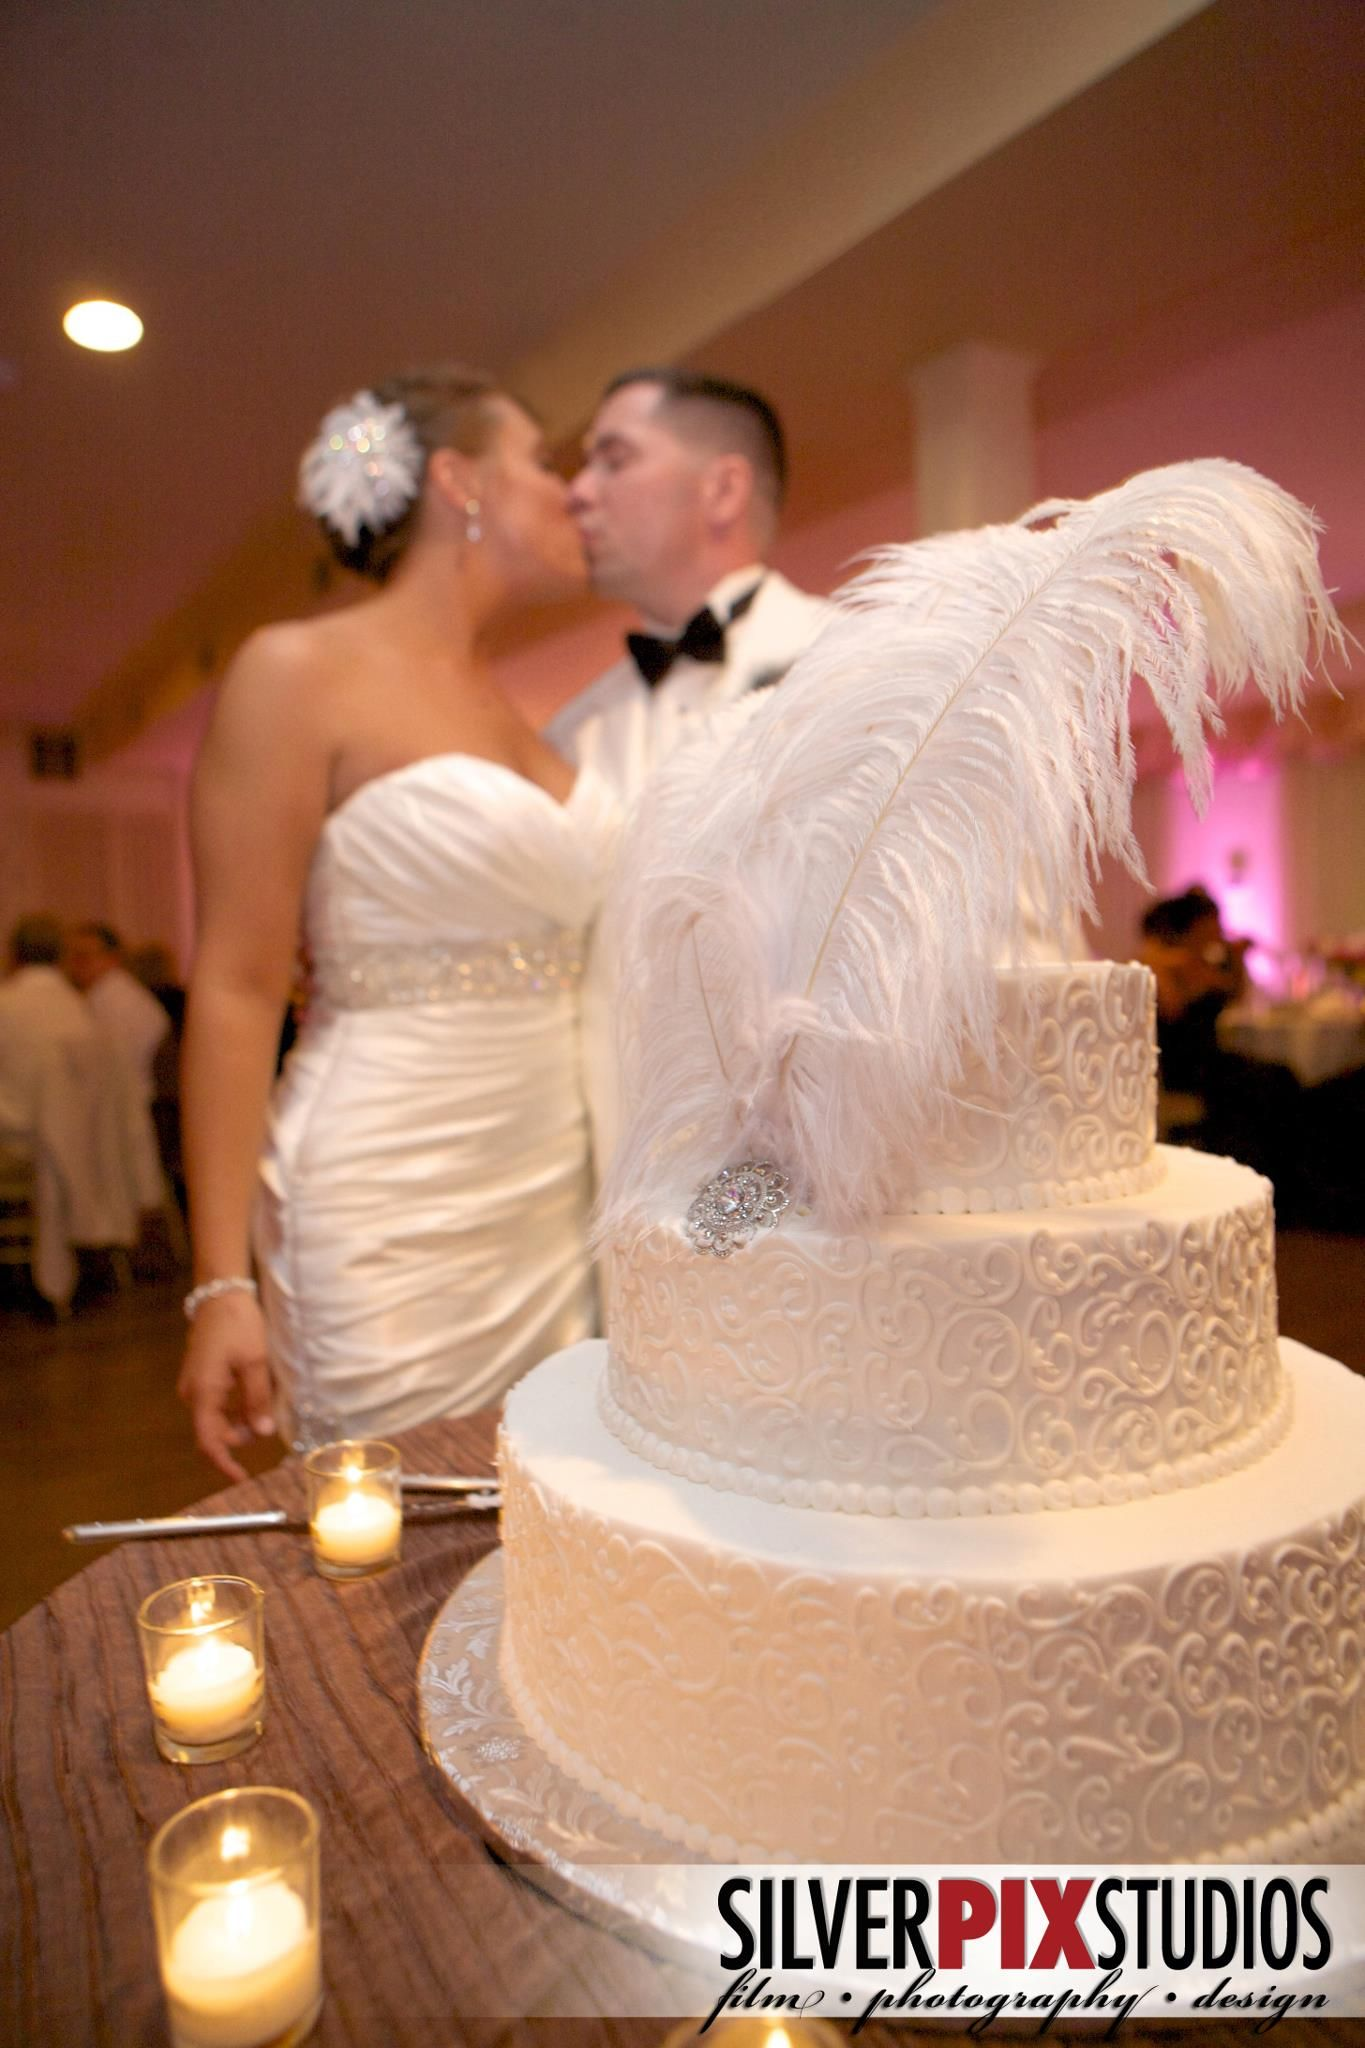 THE GREAT GATSBY themed wedding. Love the feathers on the cake. Photography by Amber Maher-GIlb ...